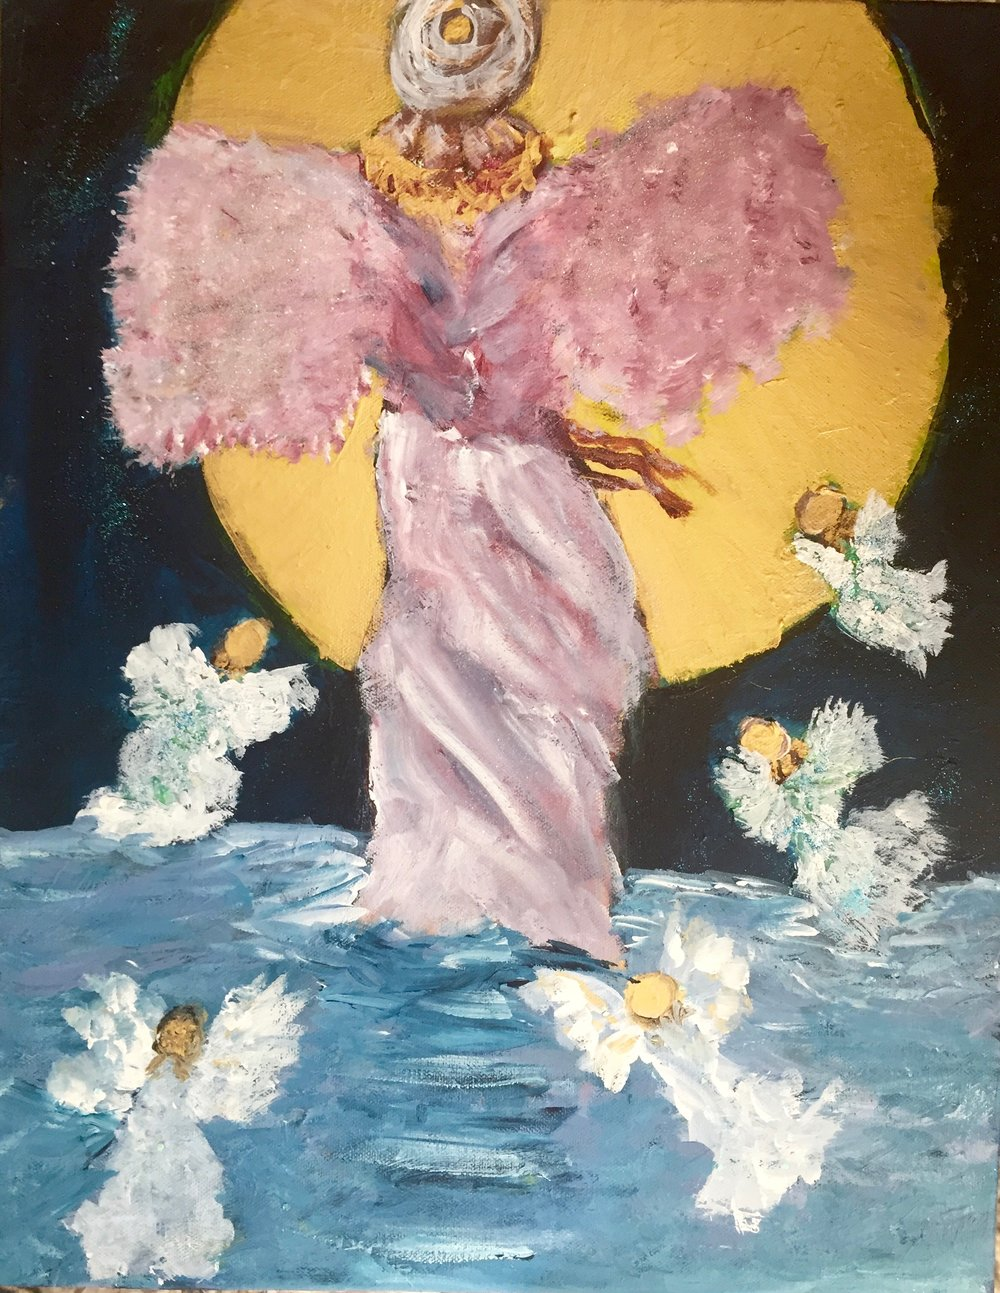 ANGEL OF THE ELOHIM 16 X 20                 Mixed Media on Canvas                    $388